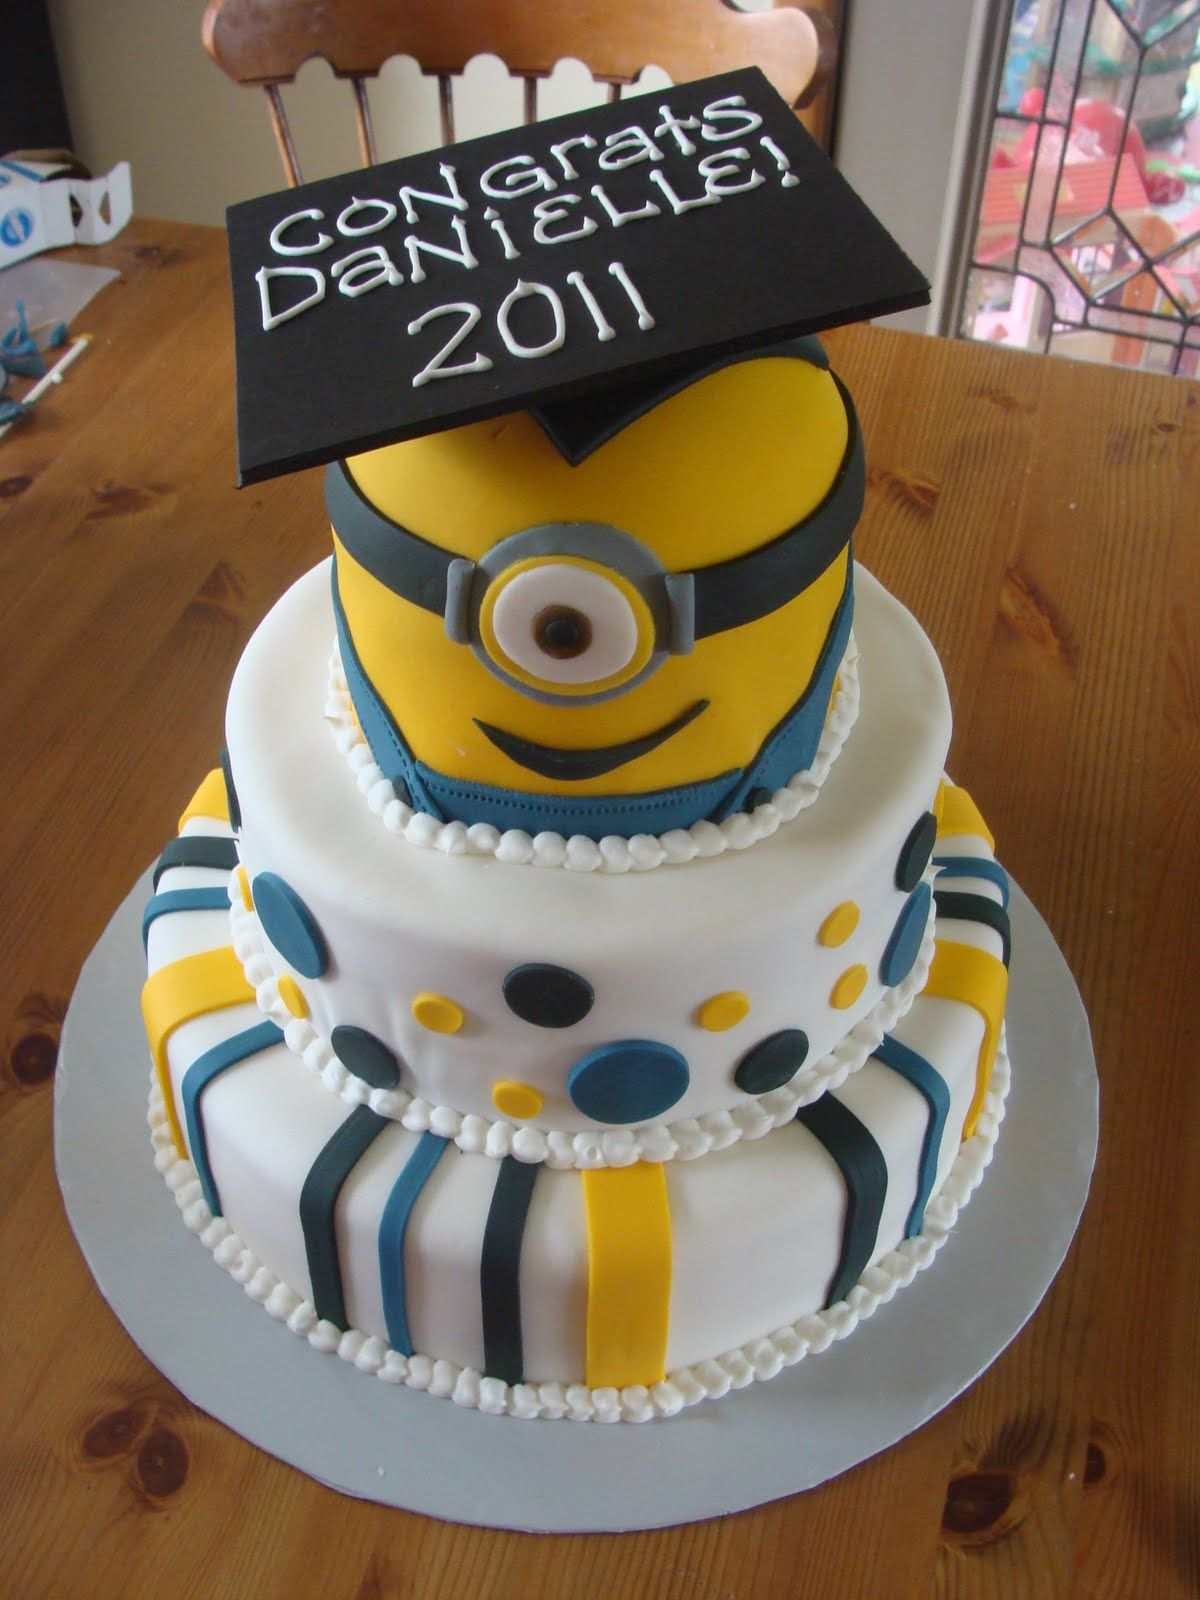 Despicable Me 2 movie cakes photos Sweet Treats by Bonnie